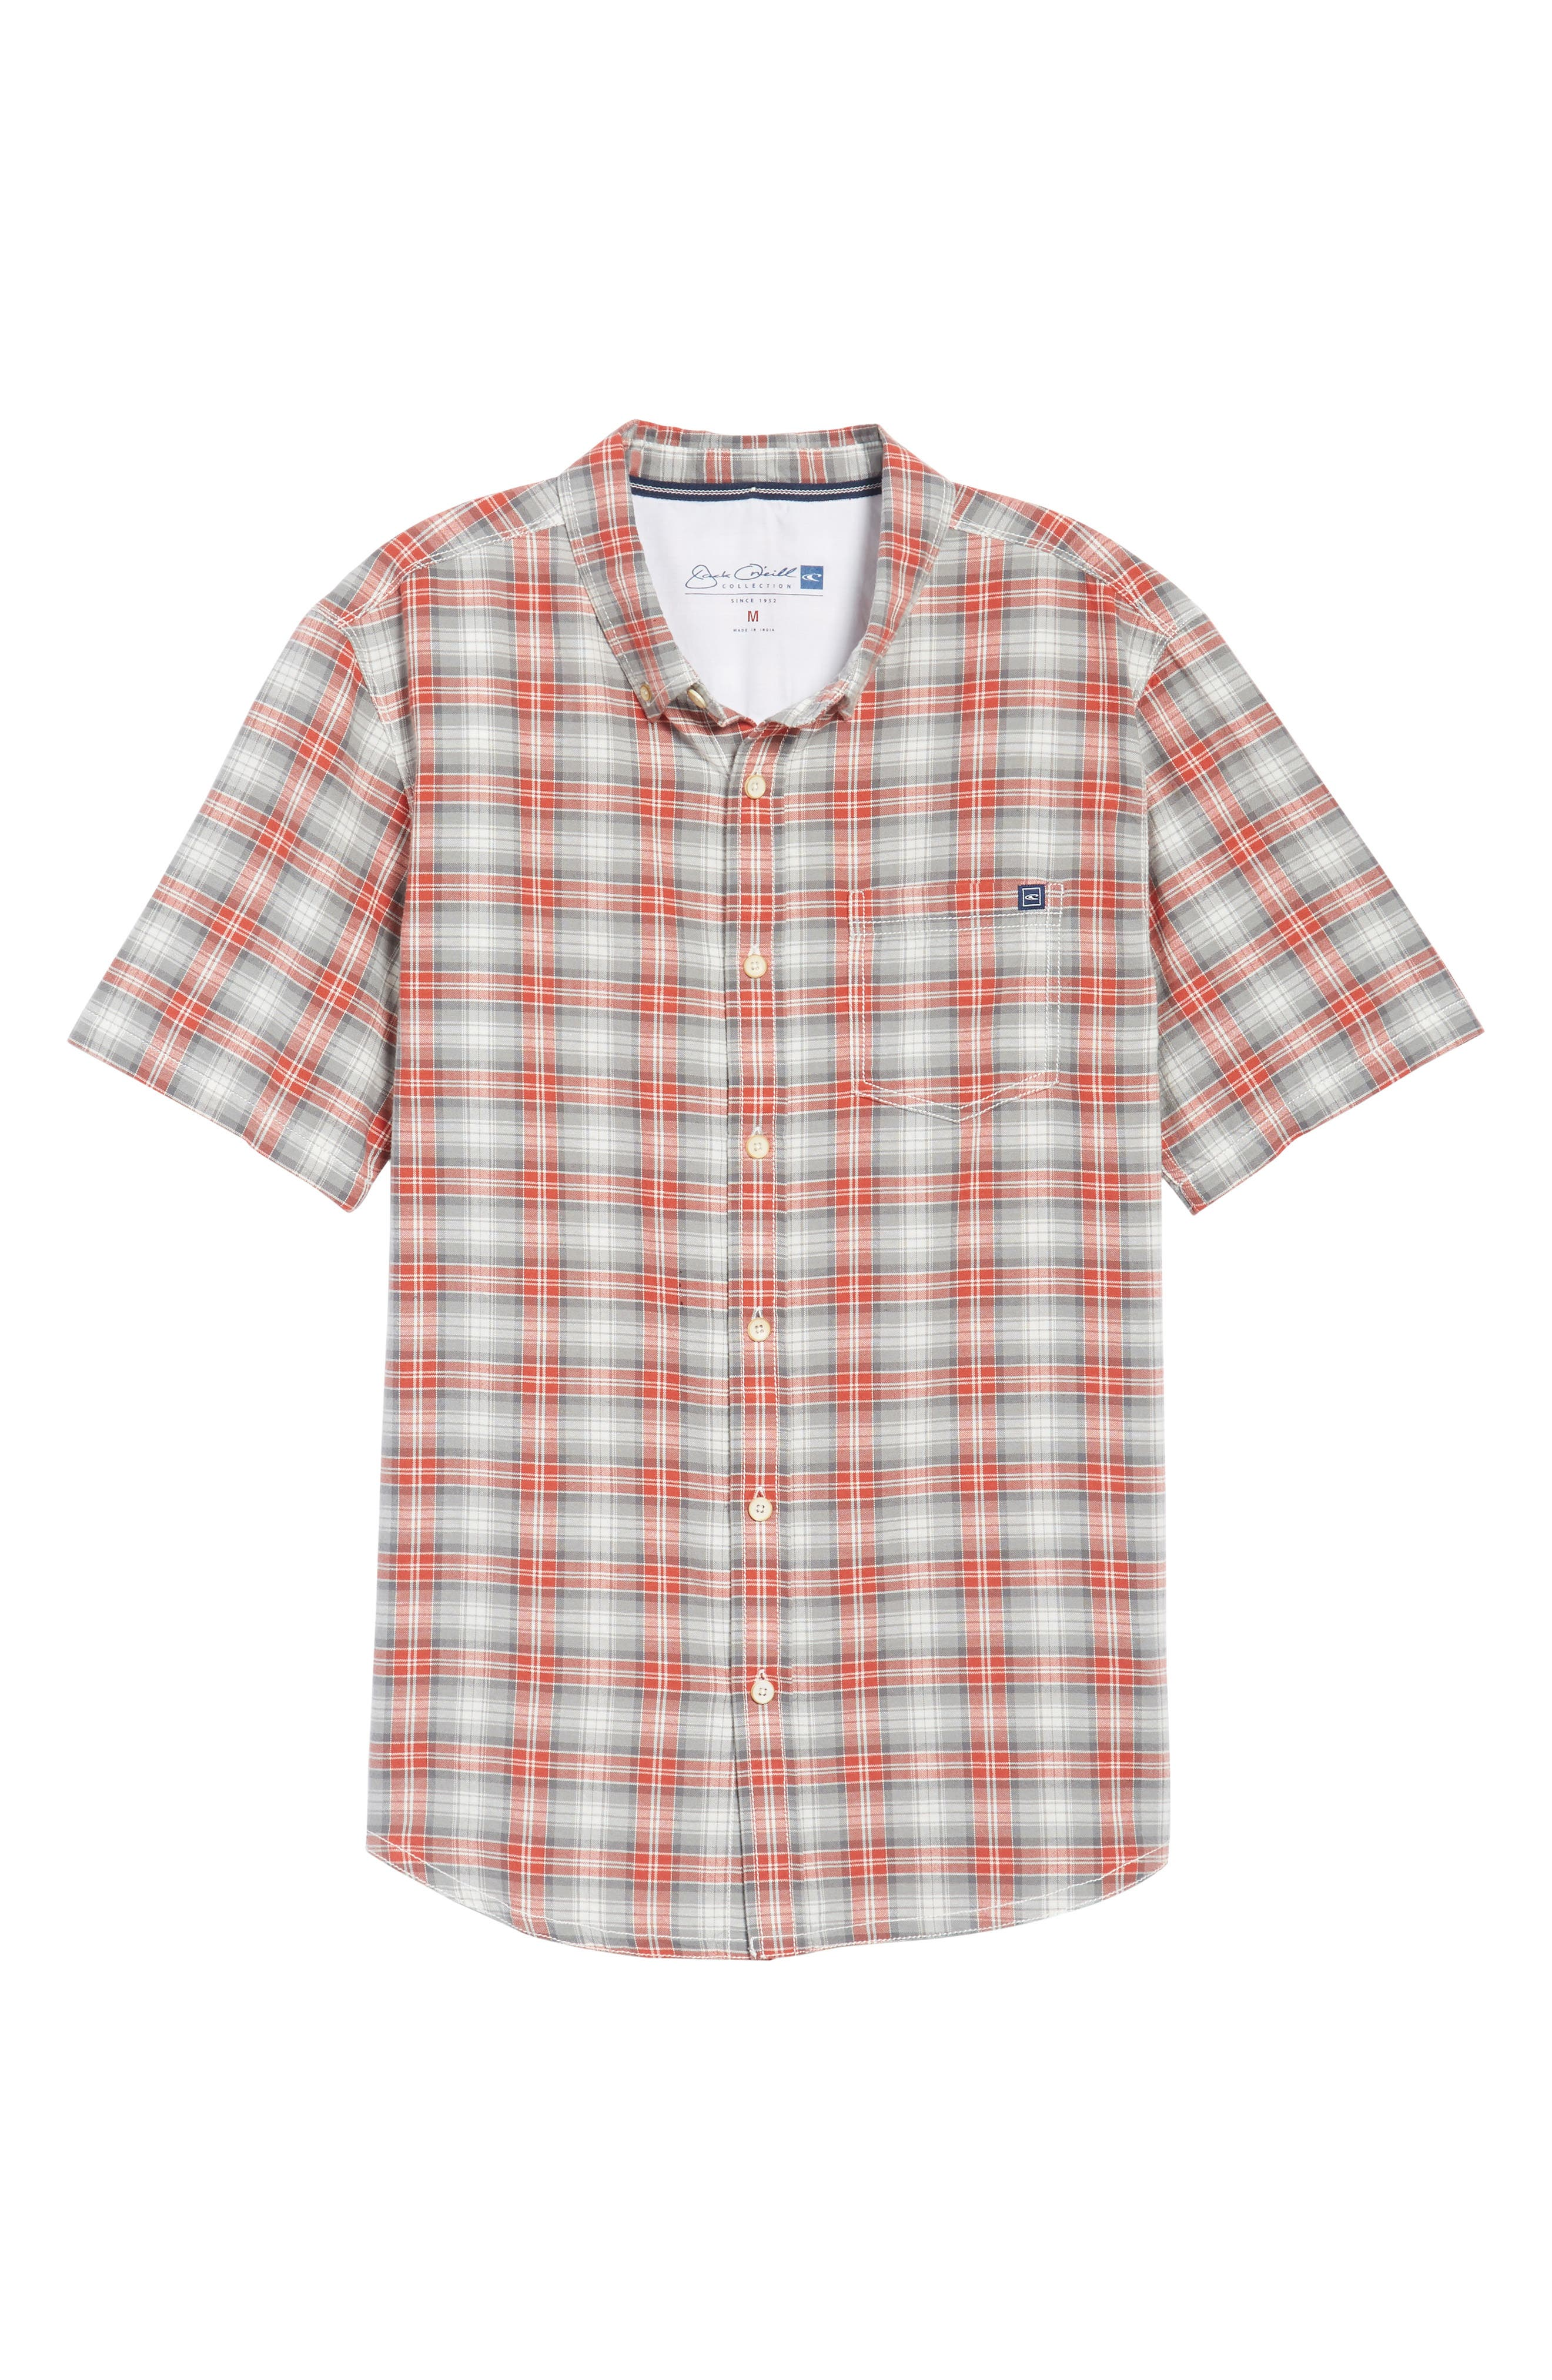 Voyager Plaid Sport Shirt,                             Alternate thumbnail 11, color,